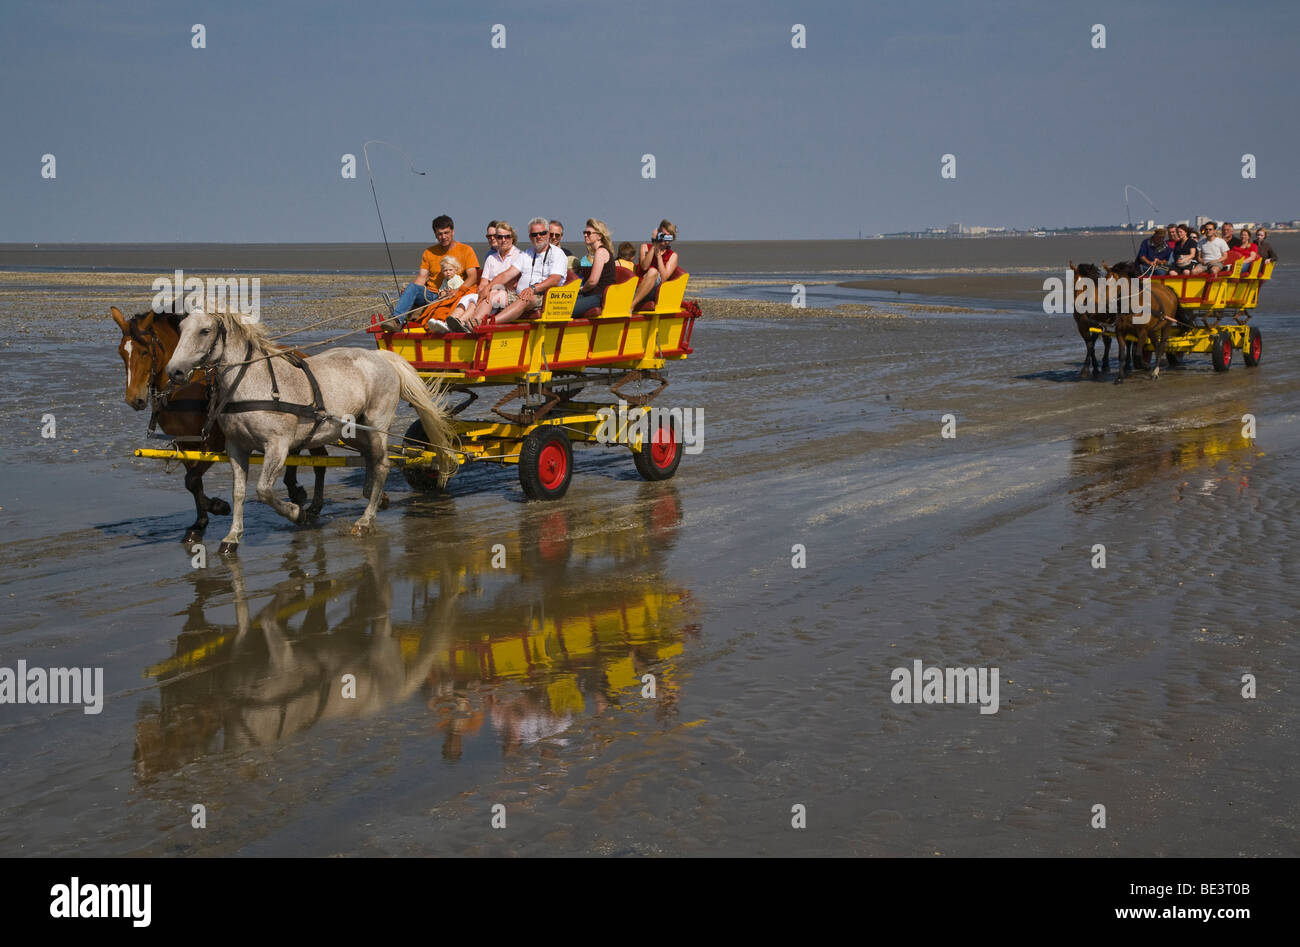 Germany, Lower Saxony, North Sea, tourists traverse the mudflats from Neuwerk Island to Cuxhaven by horse carriages - Stock Image